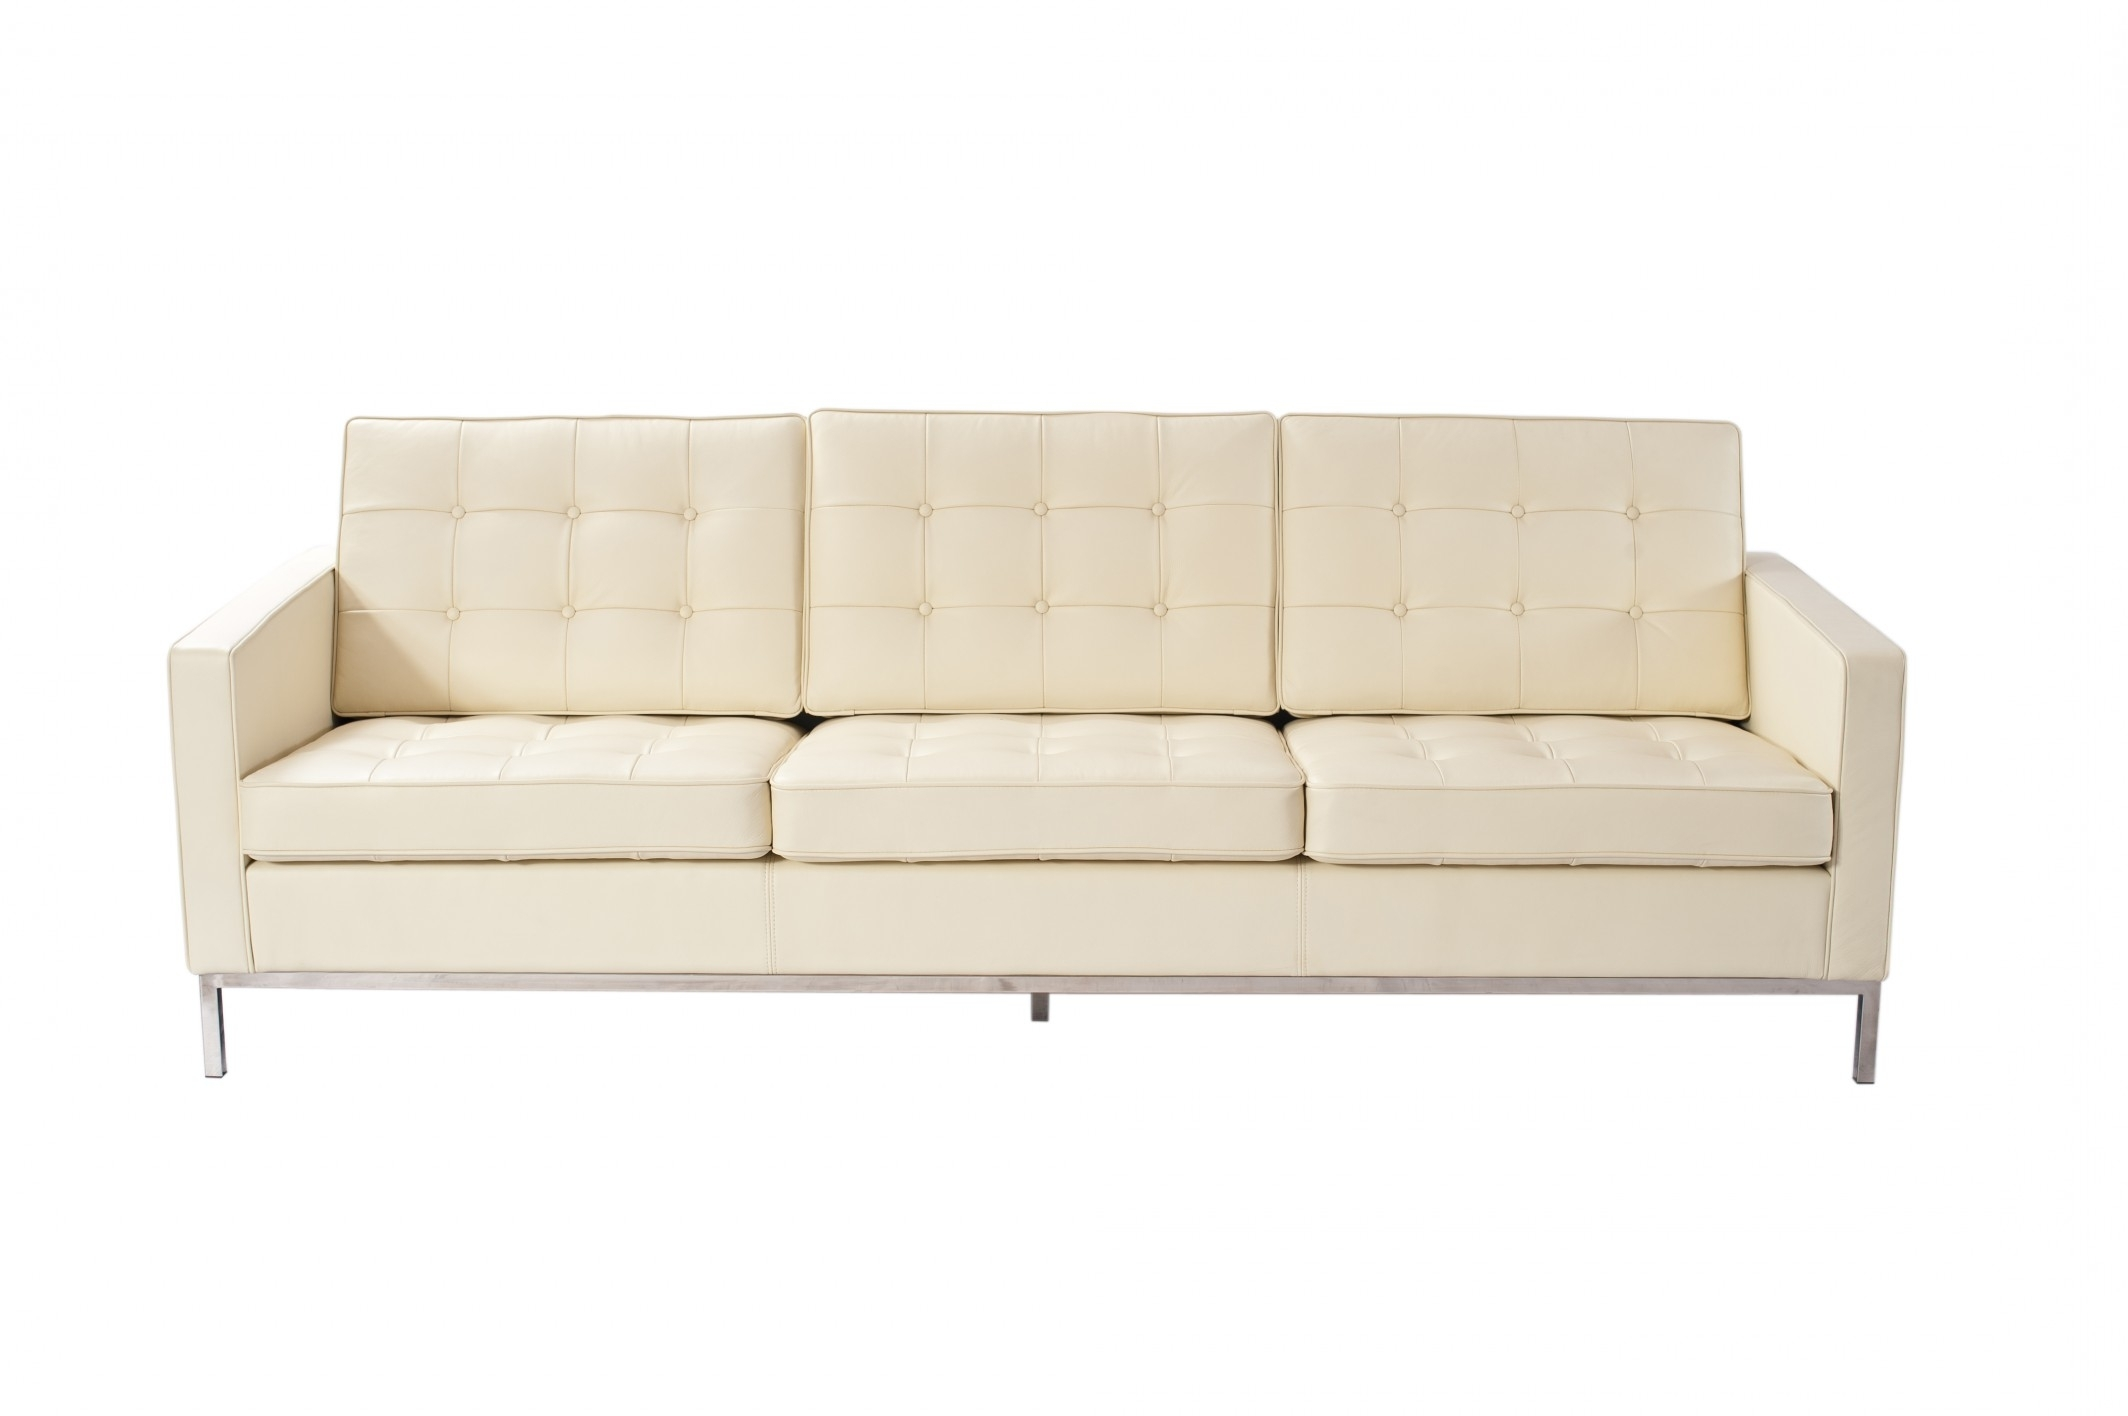 Current Florence Knoll Leather Sofas Pertaining To Fresh Florence Knoll Sofa Bed # (View 3 of 20)